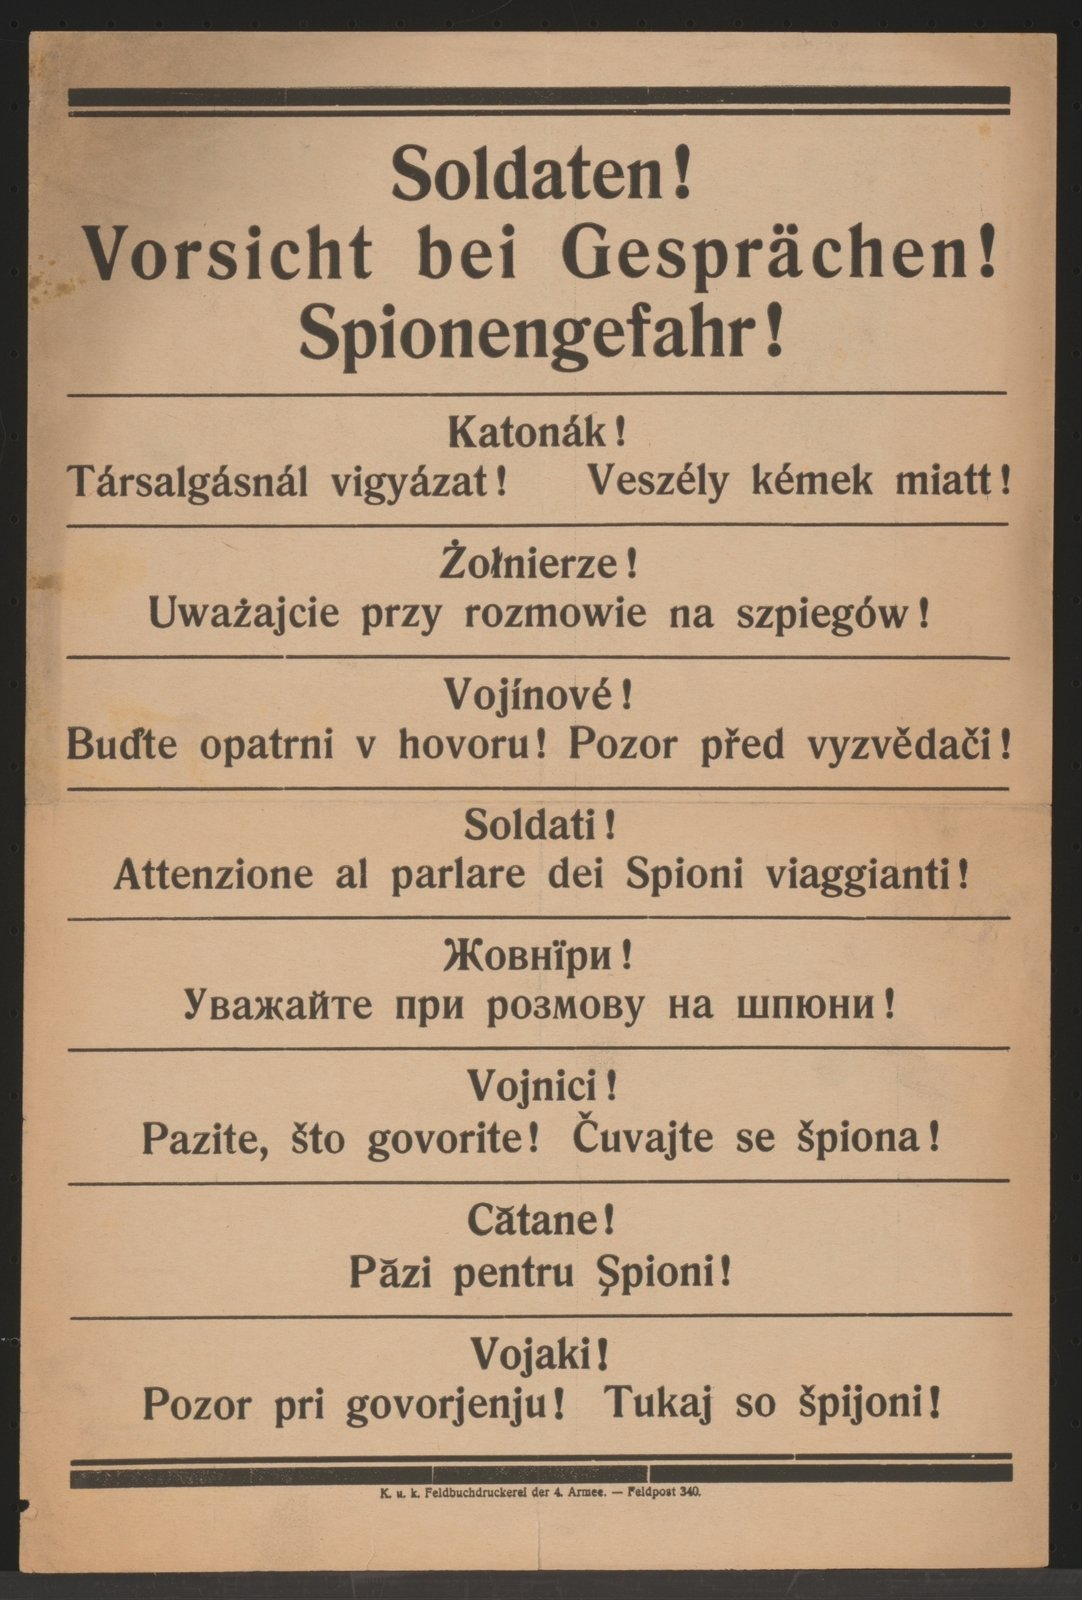 A multilingual poster warns the soldiers from enemy spies behind the lines., K.u.k. Feld-Buchdruckerei der 4. Armee 1916 Kowel, Österreichische Nationalbibliothek - Austrian National Library, Public Domain Mark